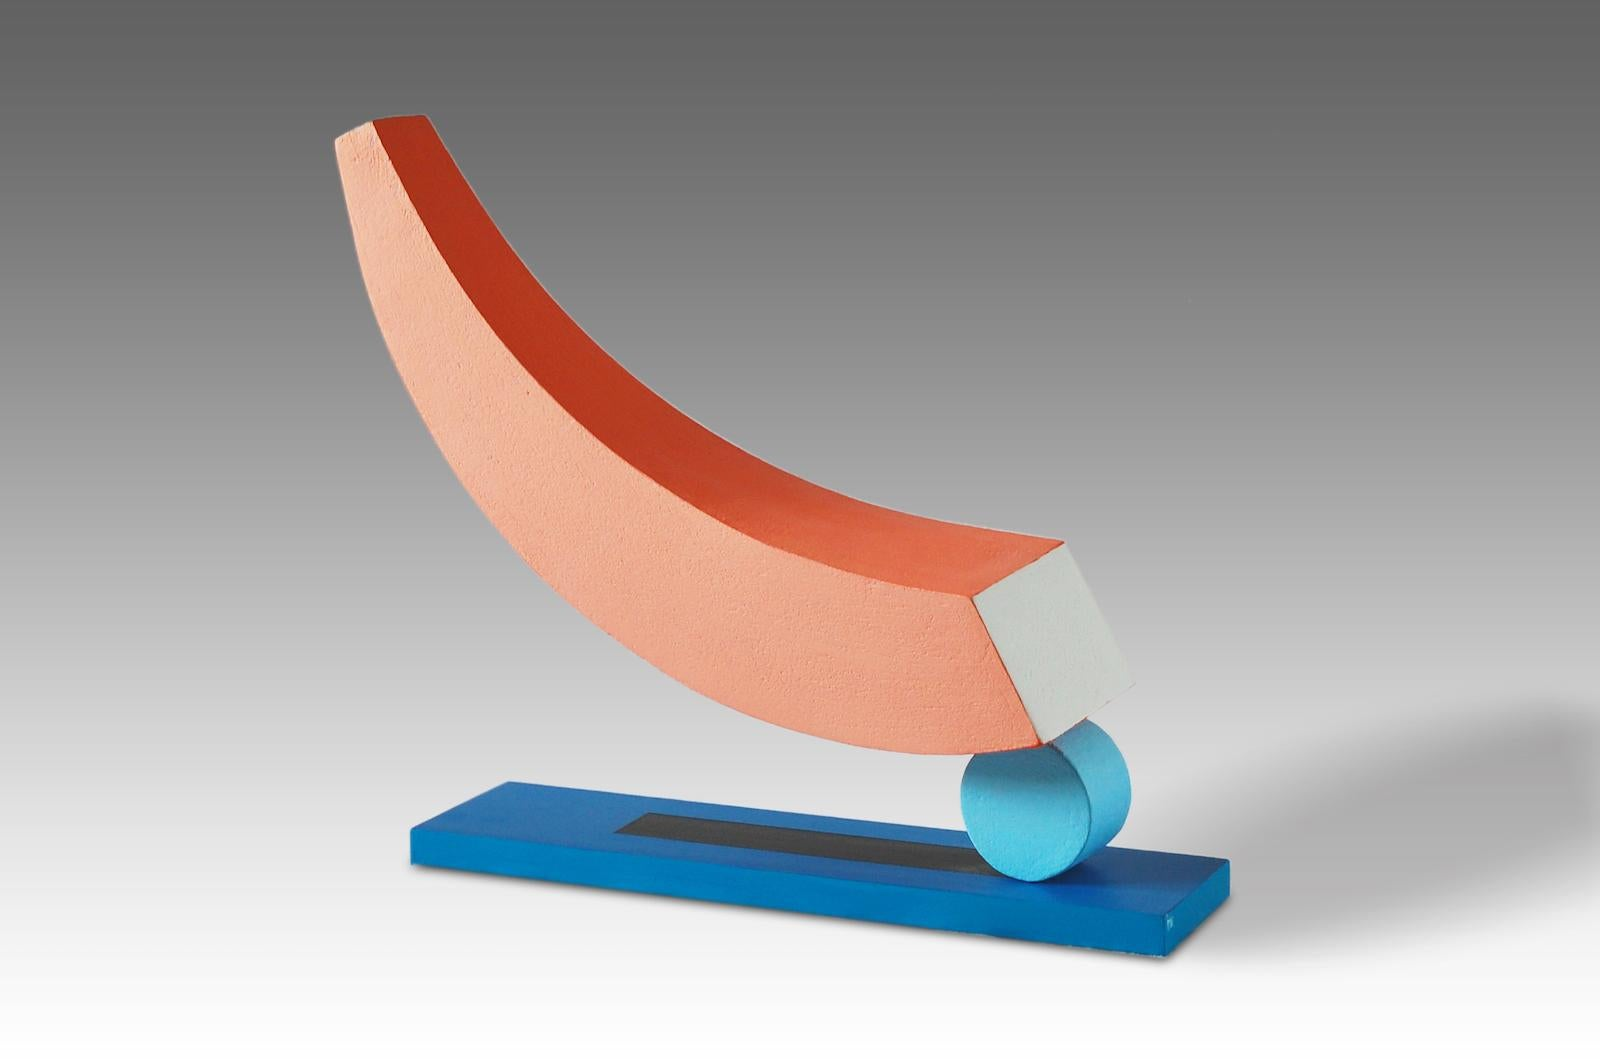 Float by Patricia Volk - Abstract ceramic sculpture, painted clay